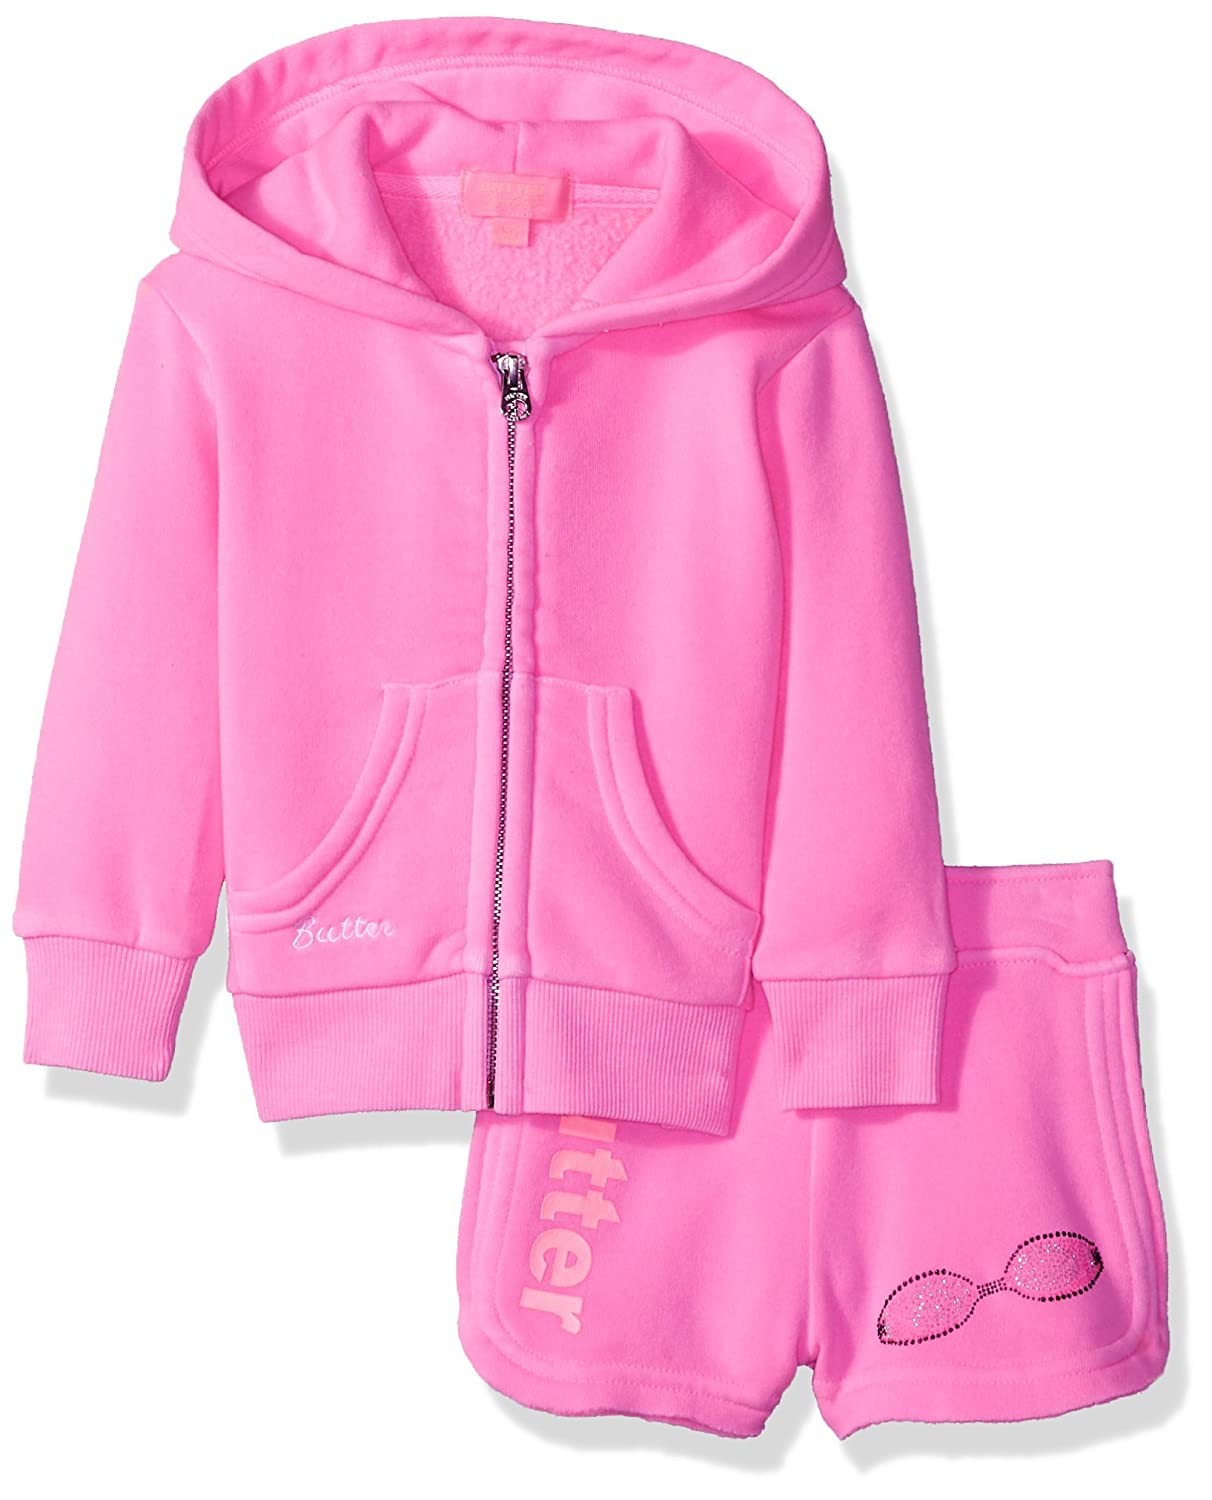 Butter Baby Girls Fleece Set